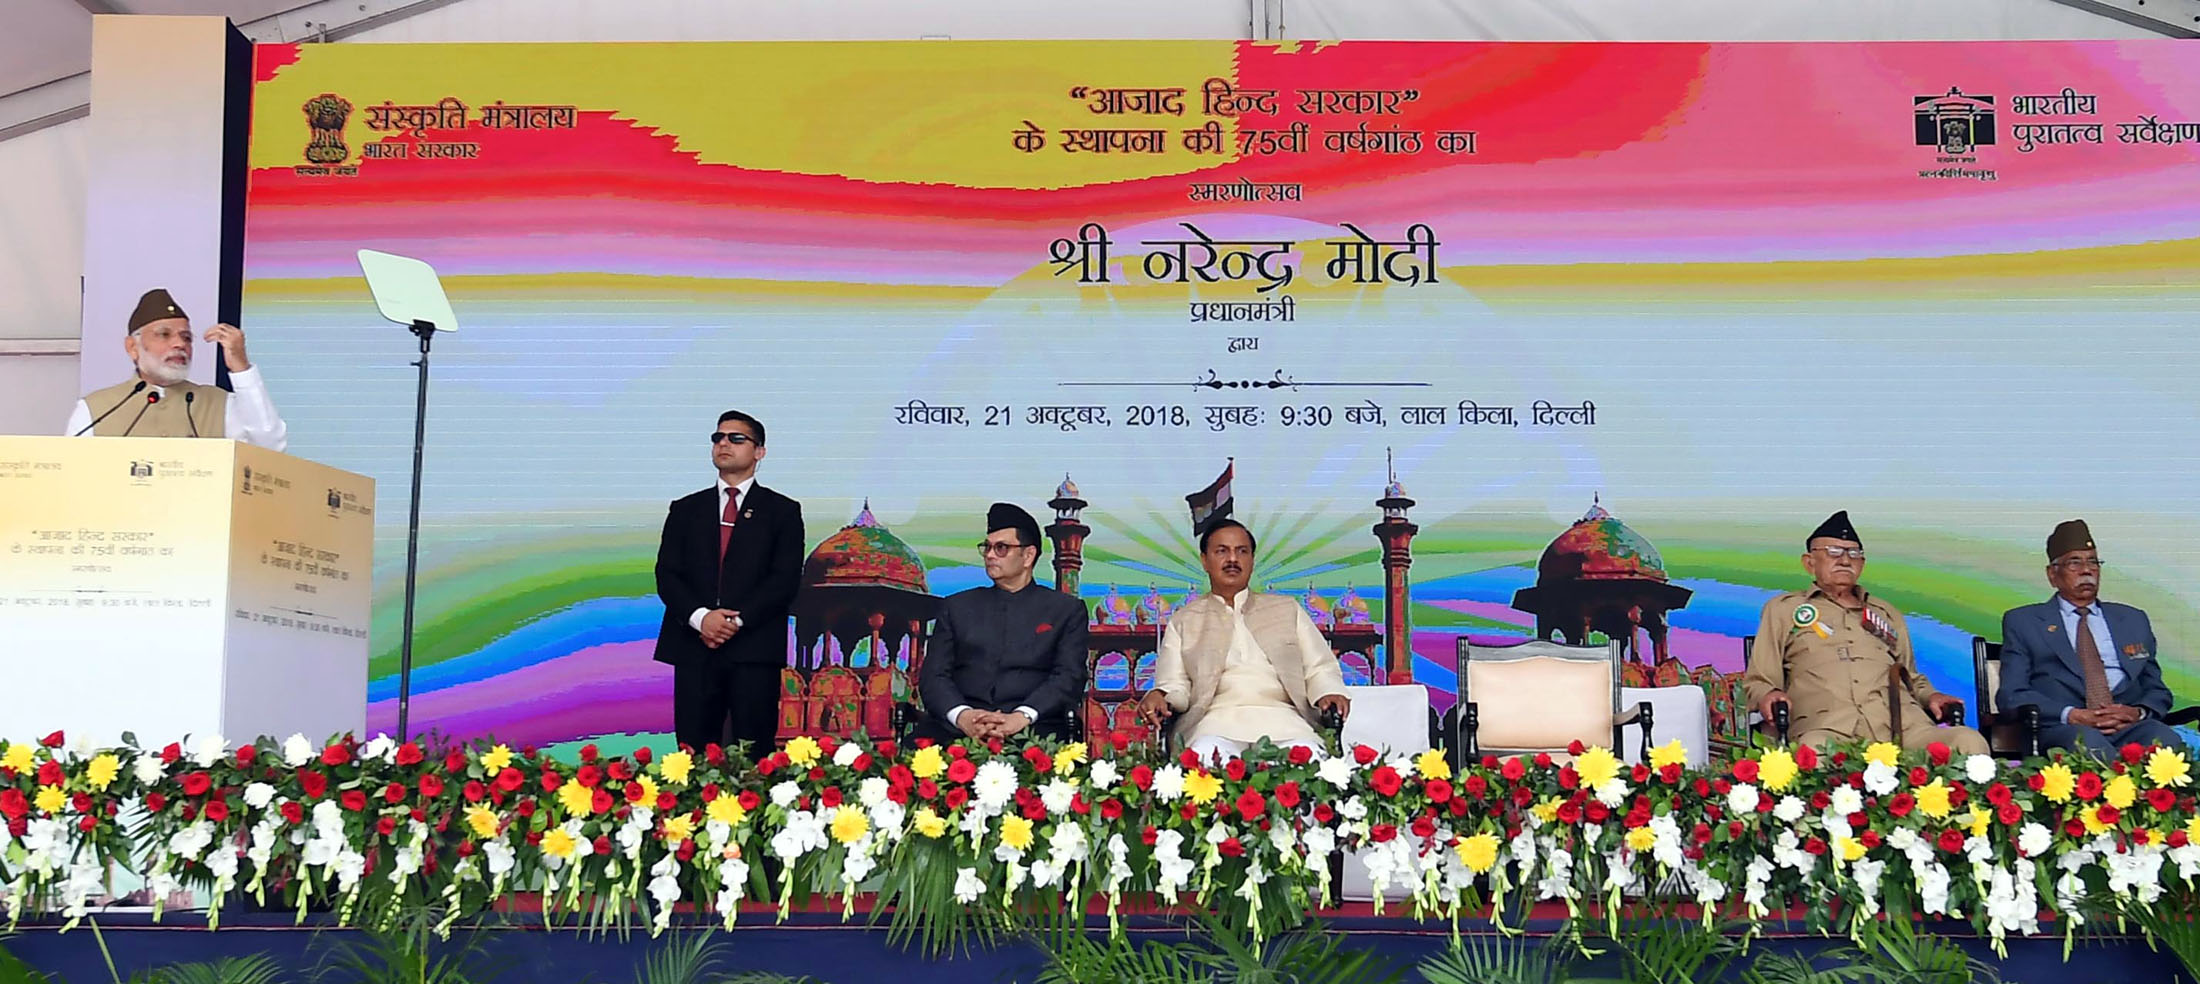 The Prime Minister, Shri Narendra Modi addressing the gathering at a function to commemorate the 75th anniversary formation of the Azad Hind Government, at Red Fort, Delhi on October 21, 2018. The Minister of State for Culture (I/C) and Environment, Forest & Climate Change, Dr. Mahesh Sharma and other dignitaries are also seen.